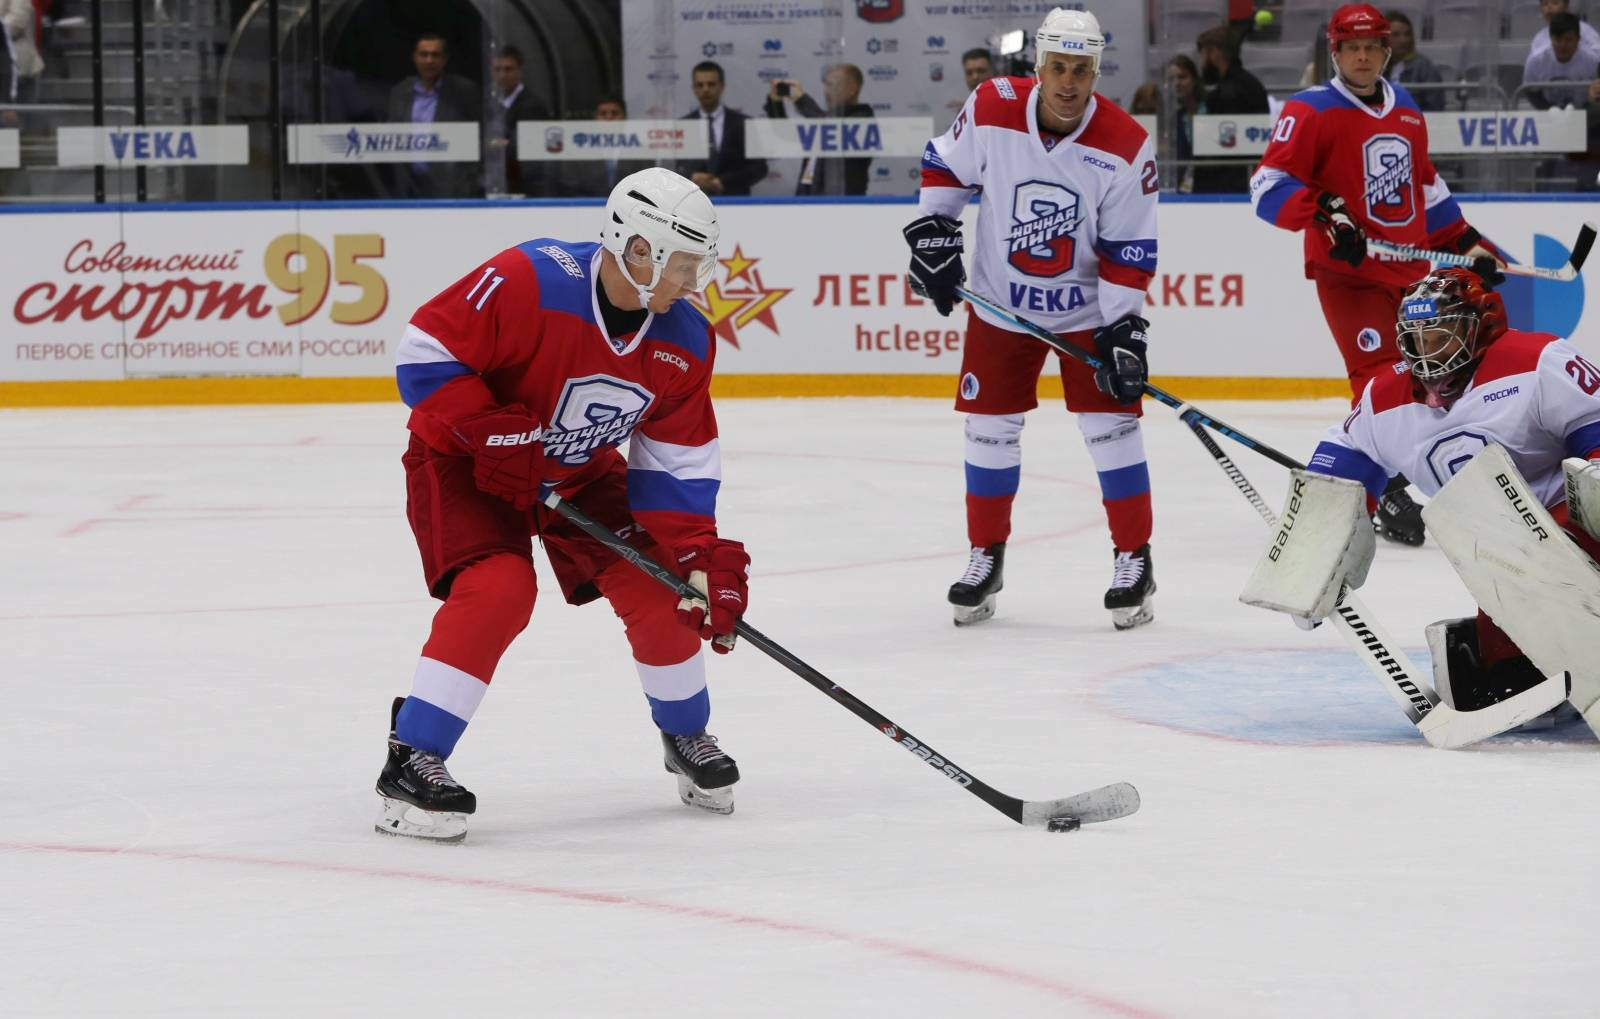 Russia's President Vladimir Putin attends a Night Hockey League match in Sochi